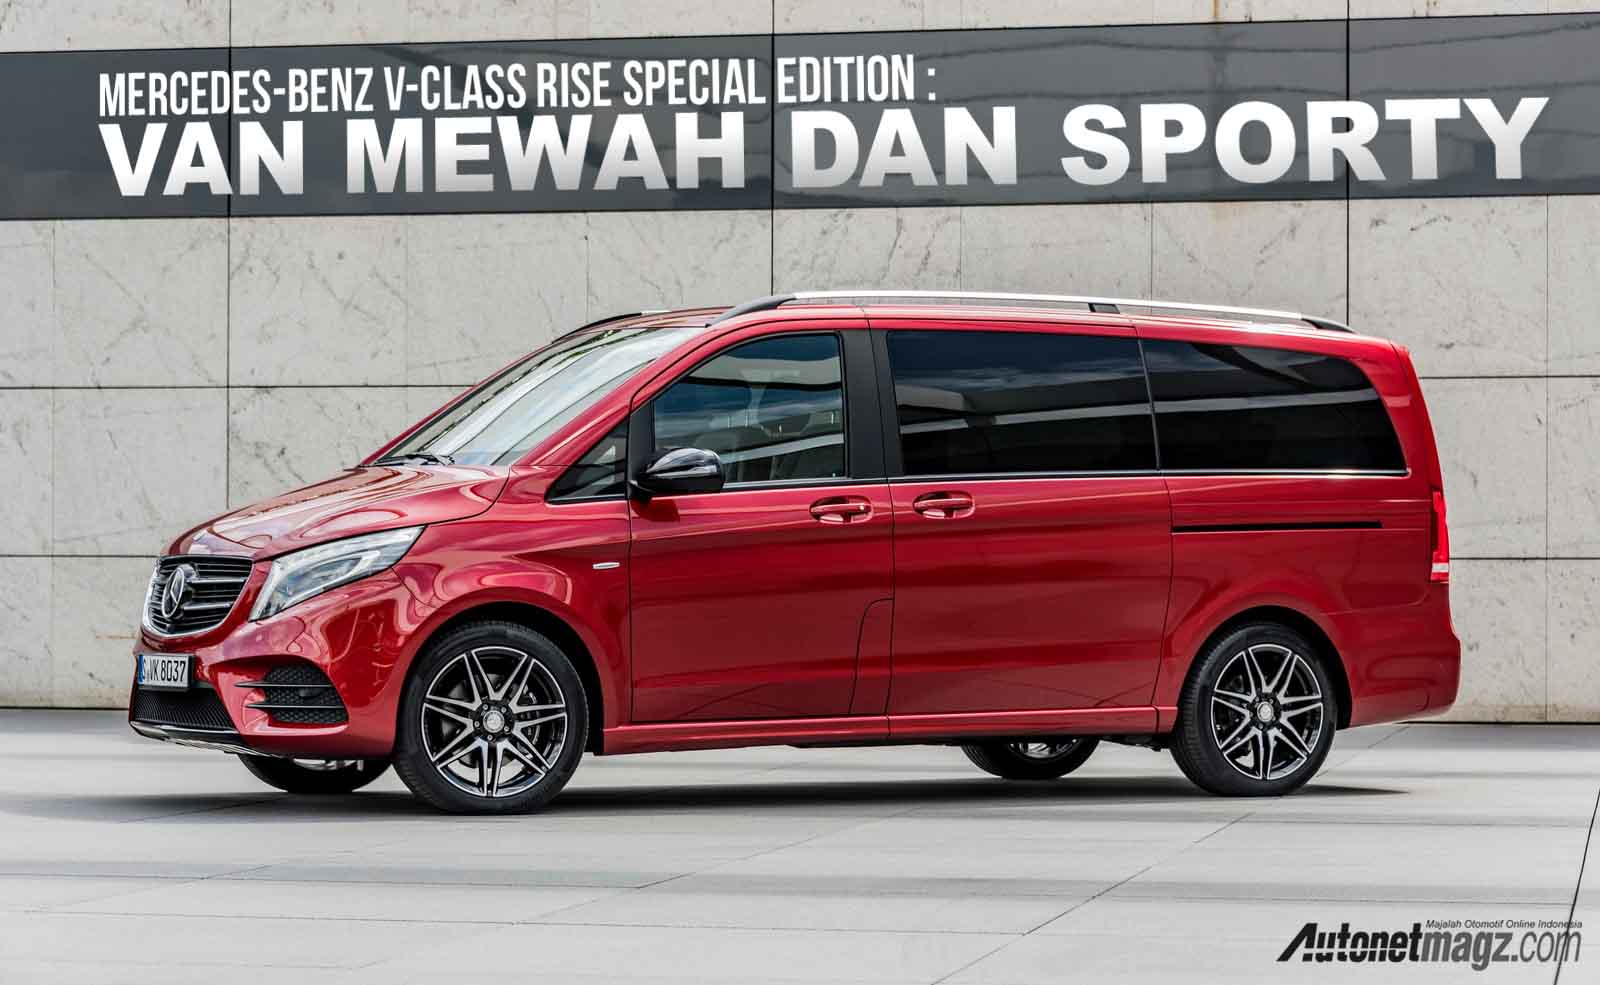 , Mercedes-Benz V-Class RISE Special Edition cover: Mercedes-Benz V-Class RISE Special Edition cover